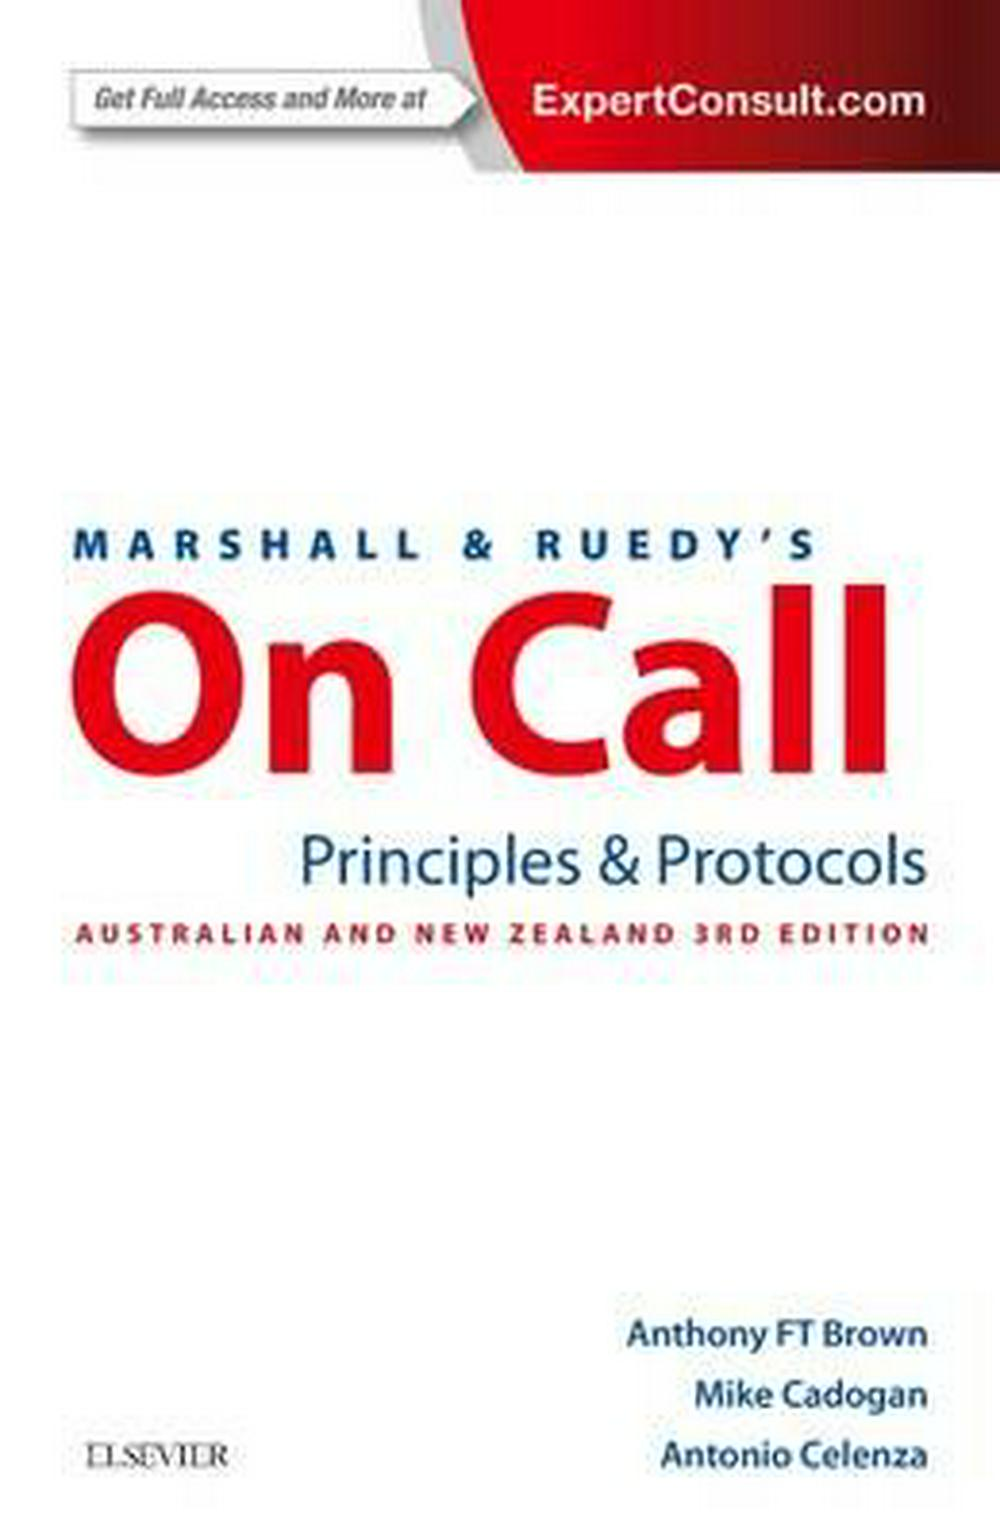 Marshall & Ruedy's On Call3rd Edition